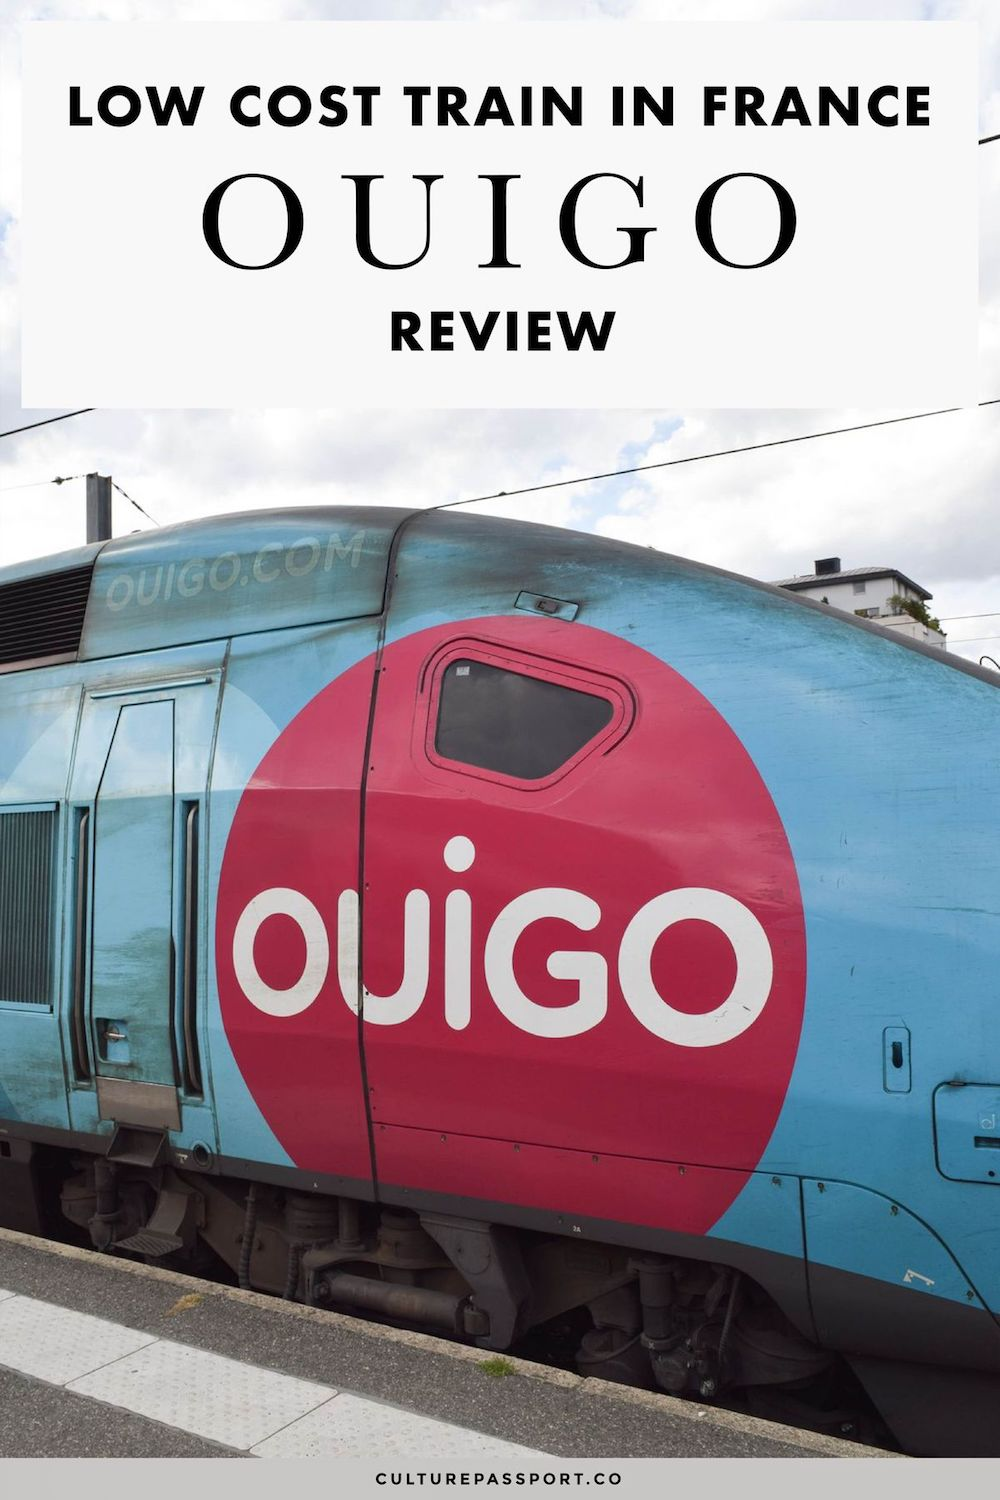 OuiGo Review: the Low-Cost Train in France